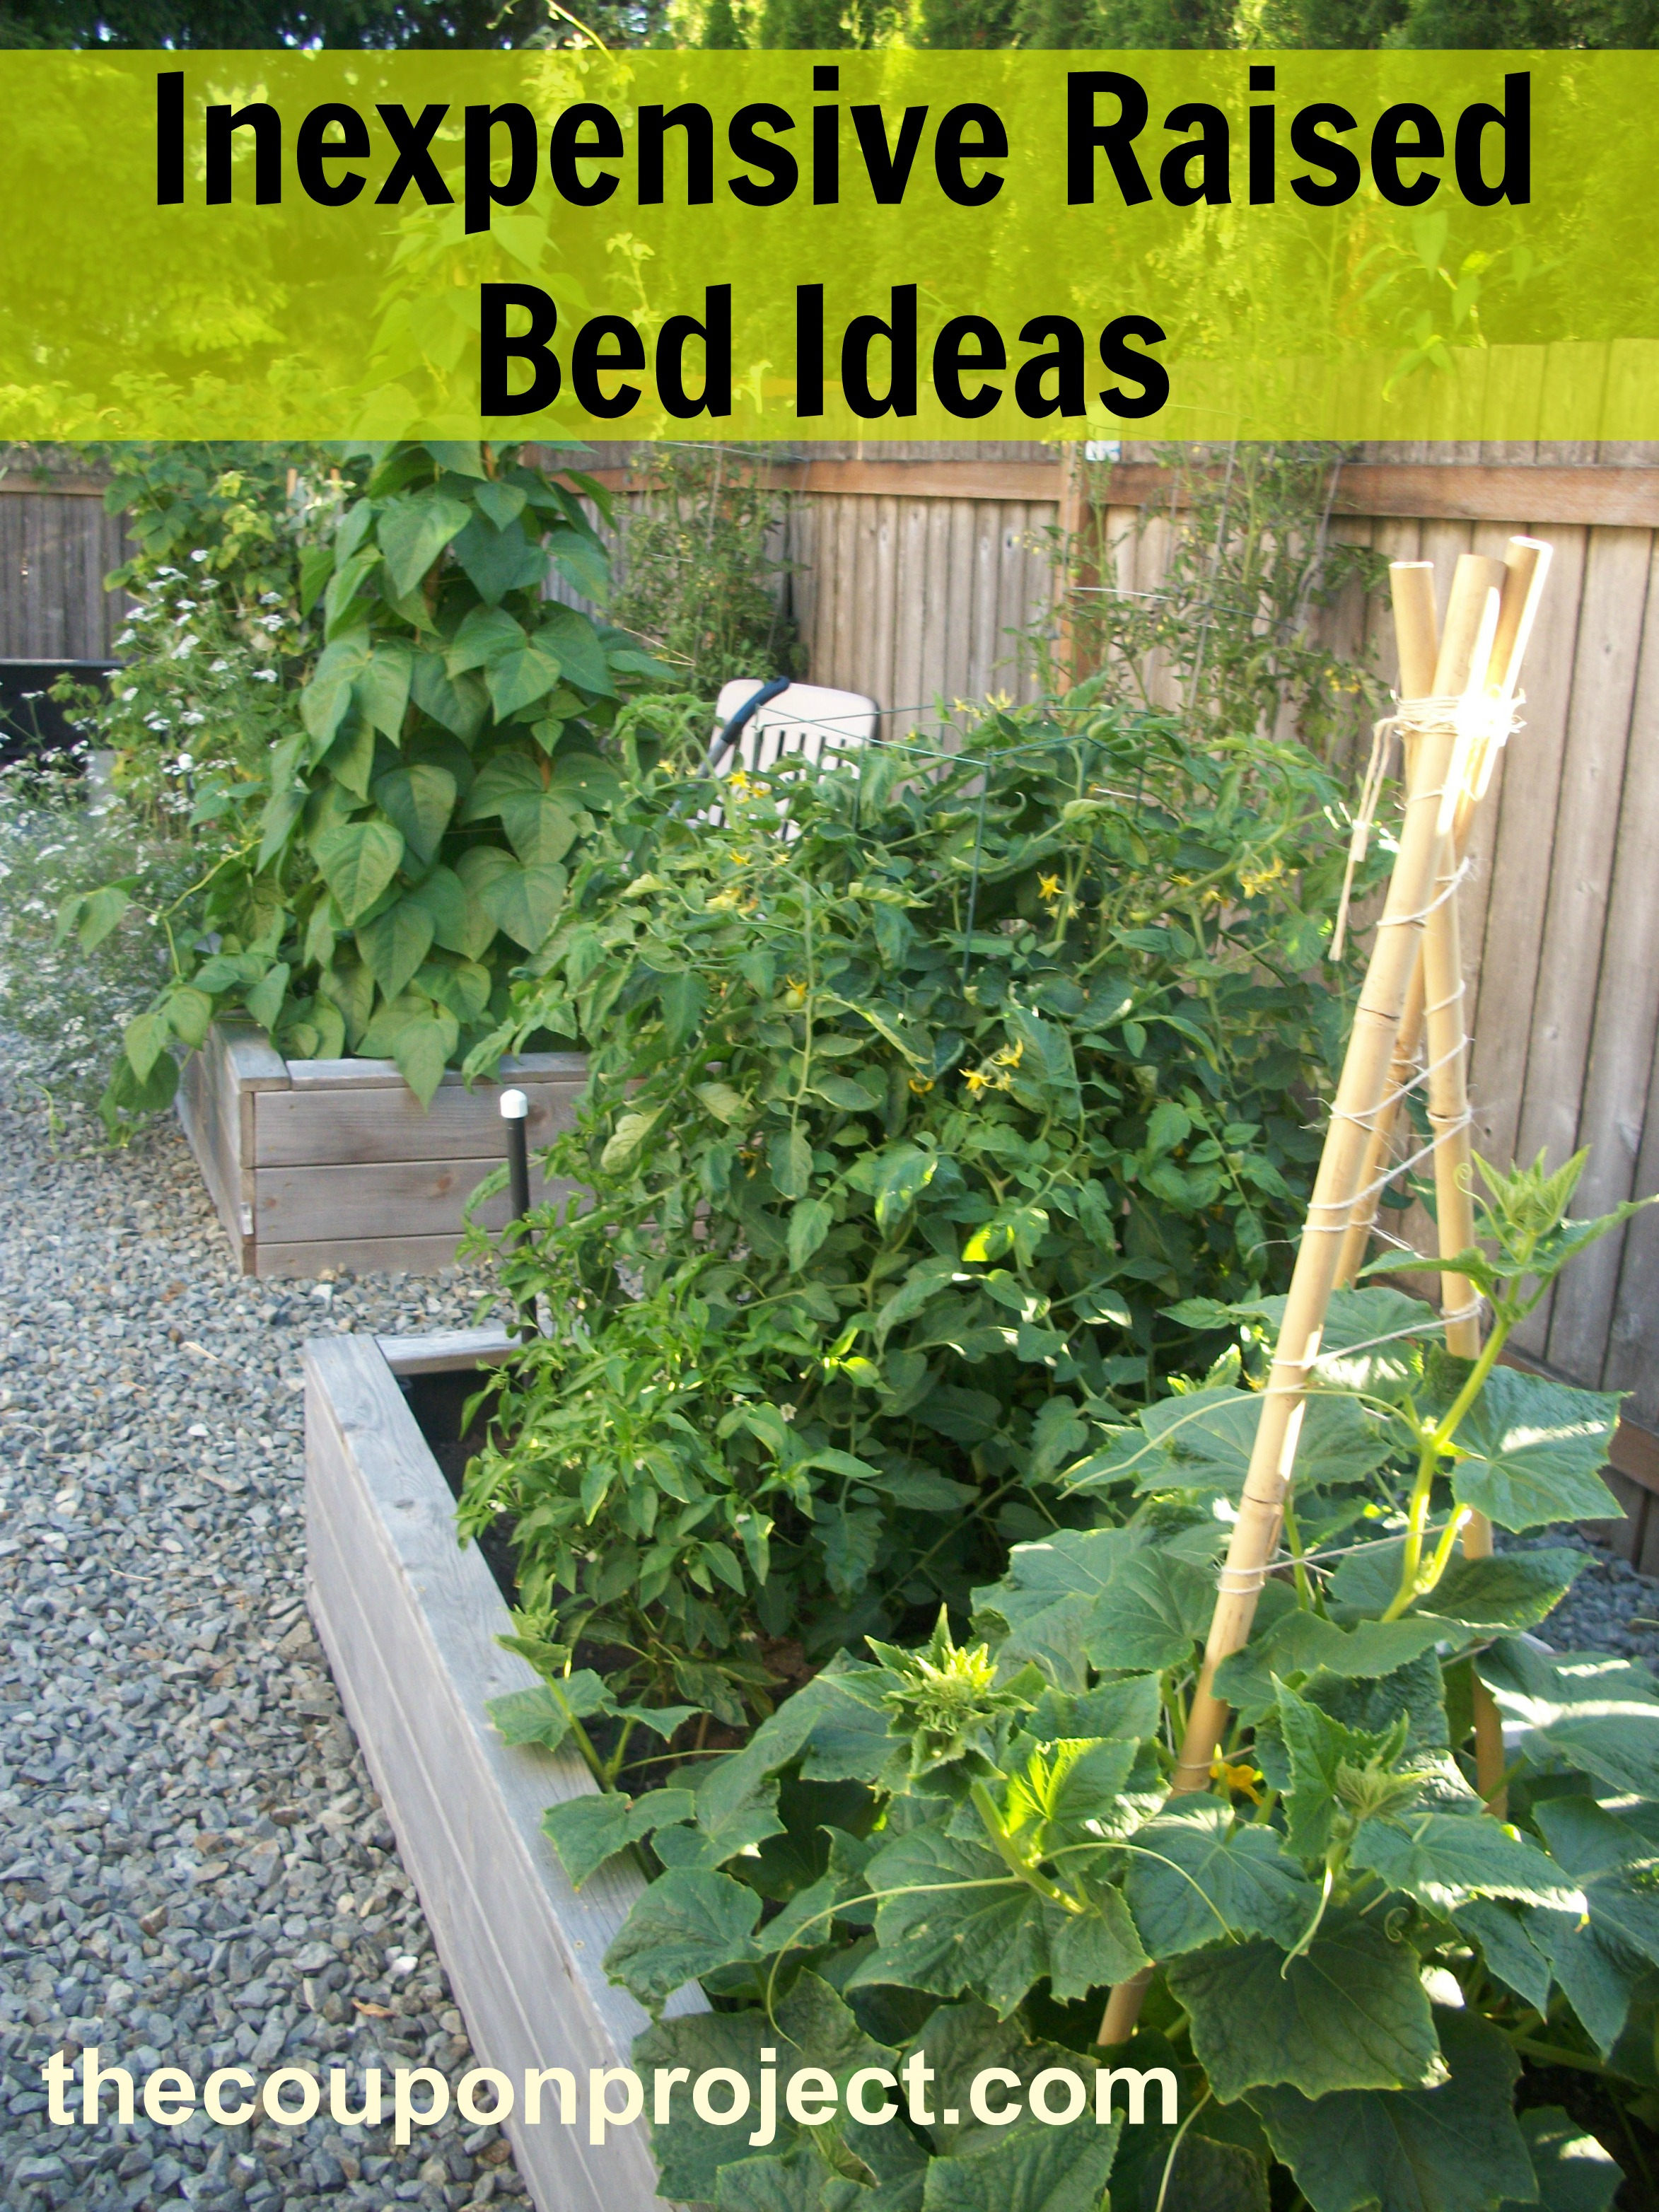 How To Make Inexpensive Raised Beds U2013 Four Different Ideas!